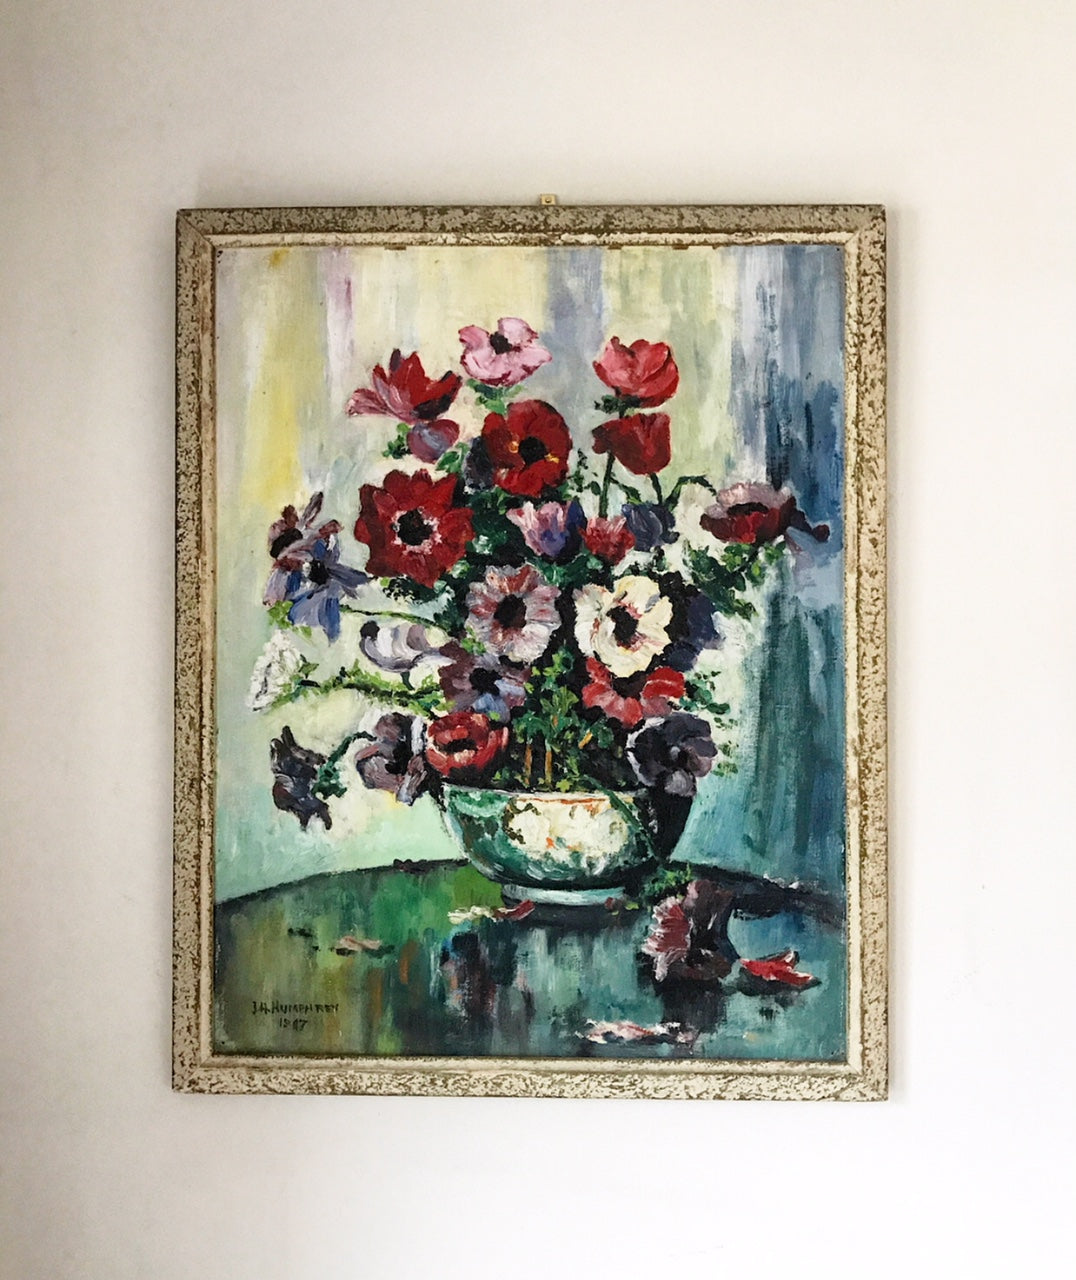 20th century oil painting of Anemones in a vase